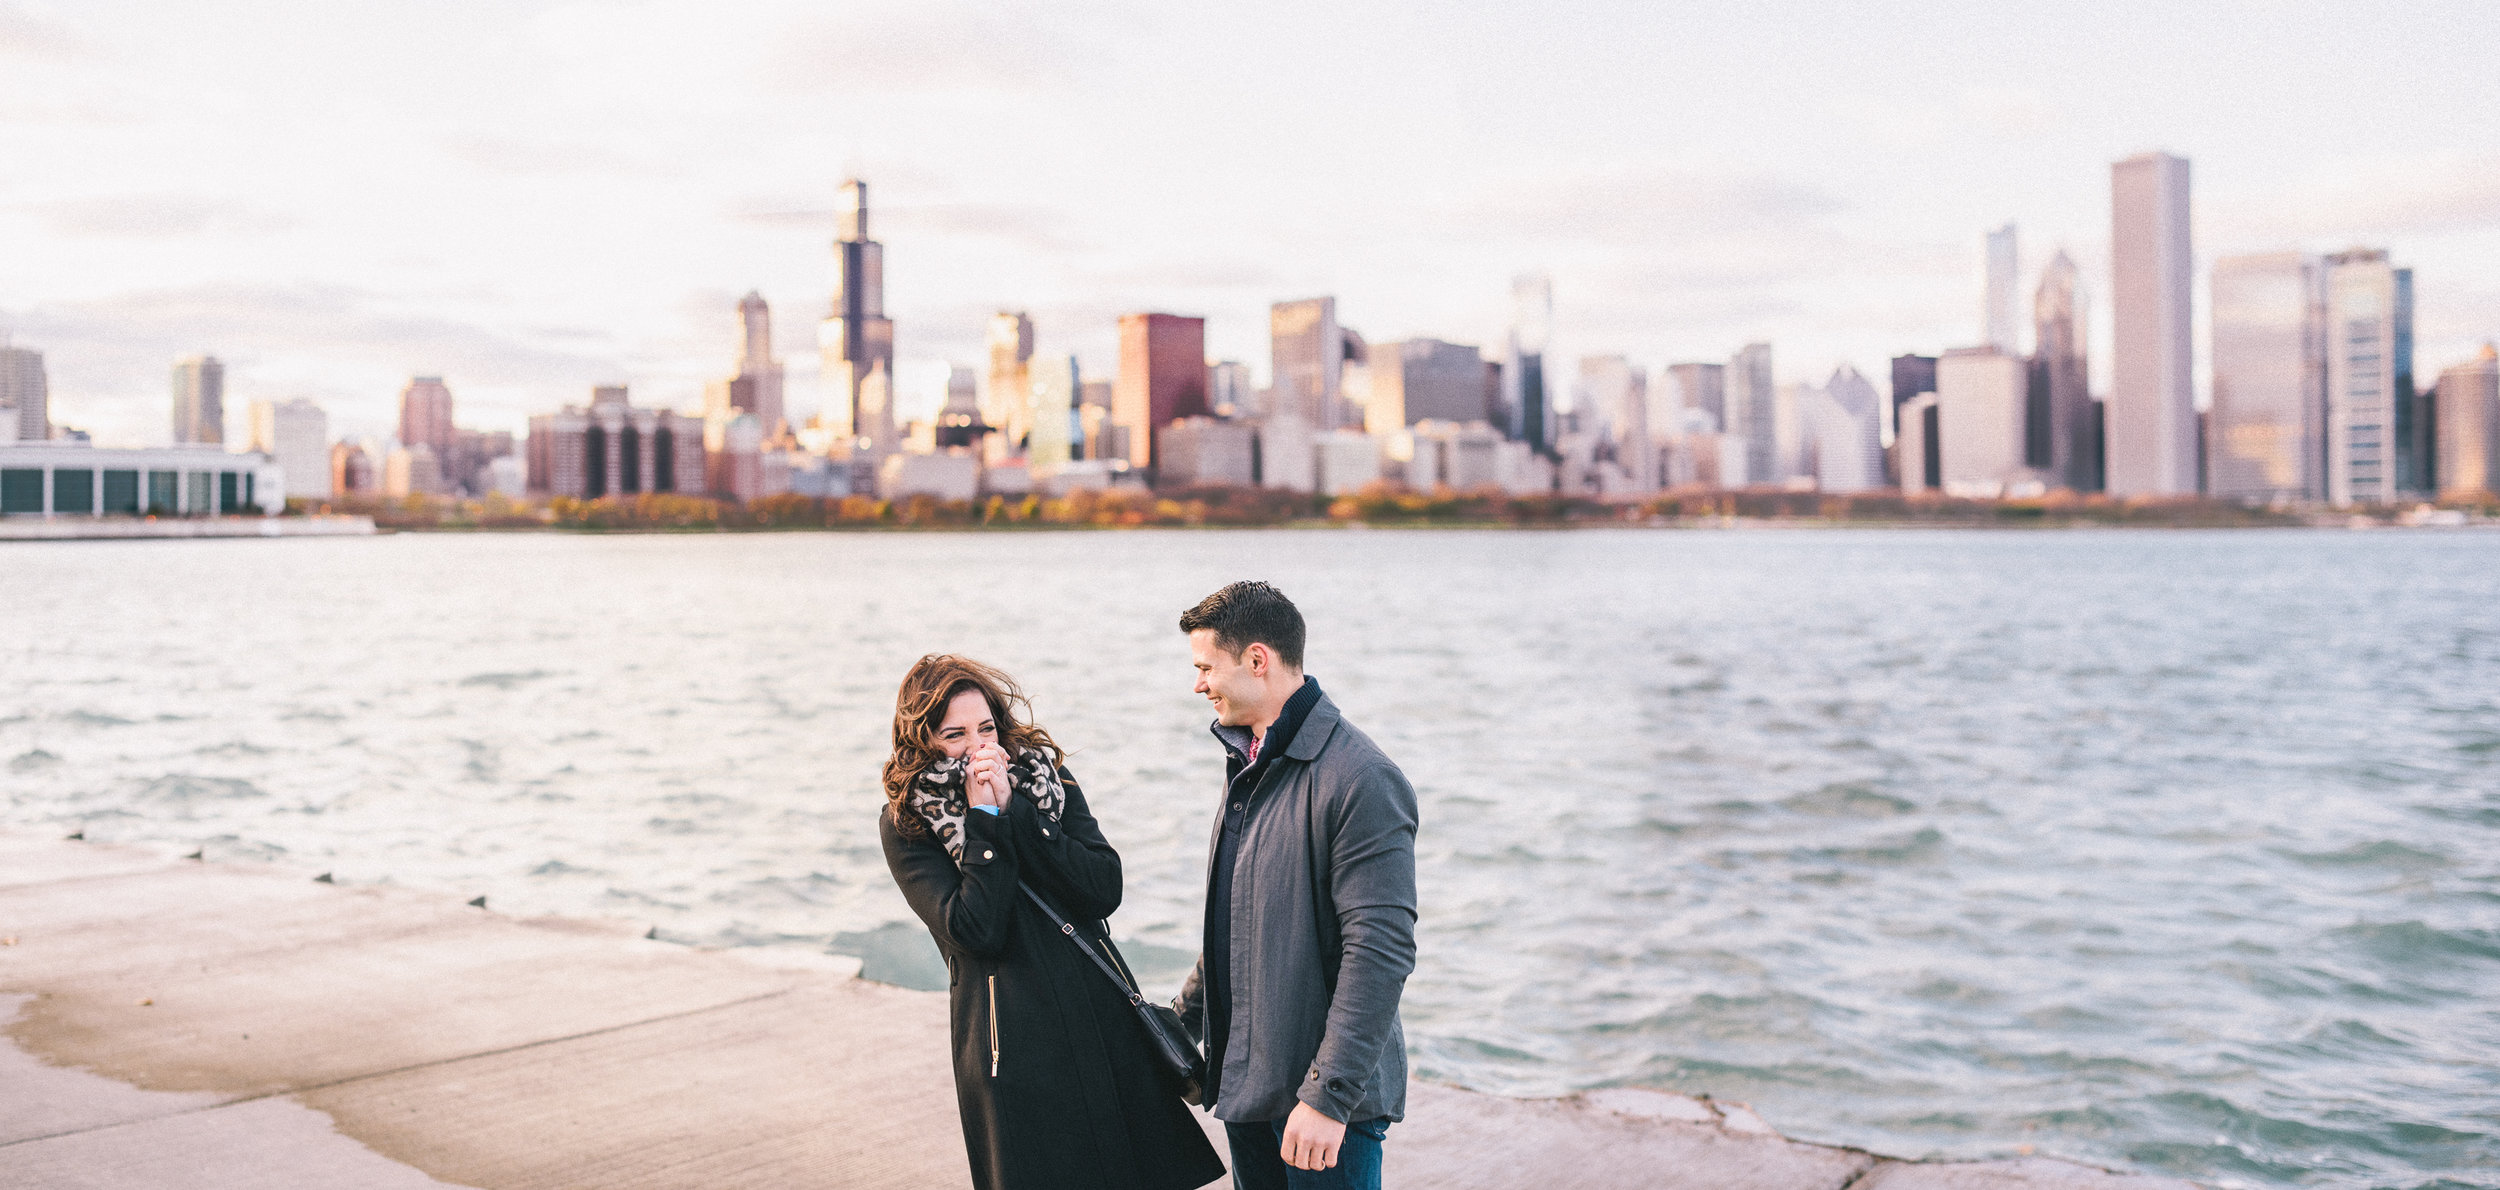 Joe in Chicago for Flytographer